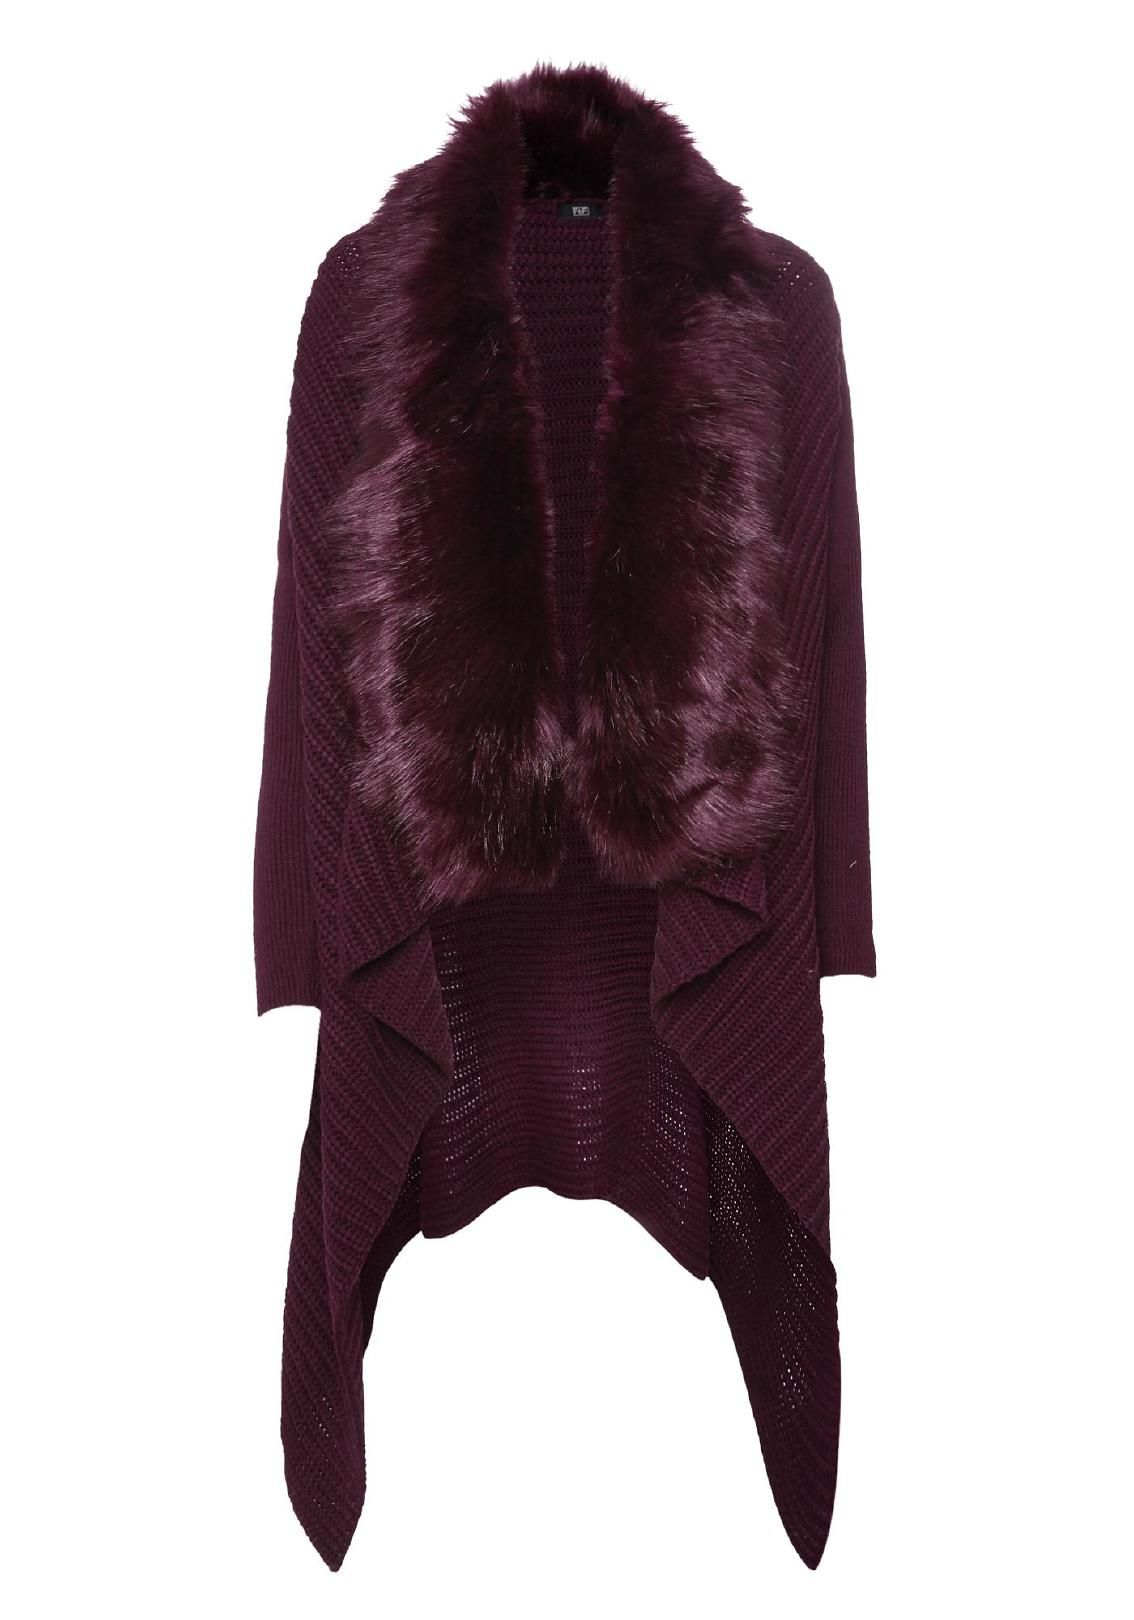 Clothing at Tesco | F&F Faux Fur Trim Waterfall Cardigan ...